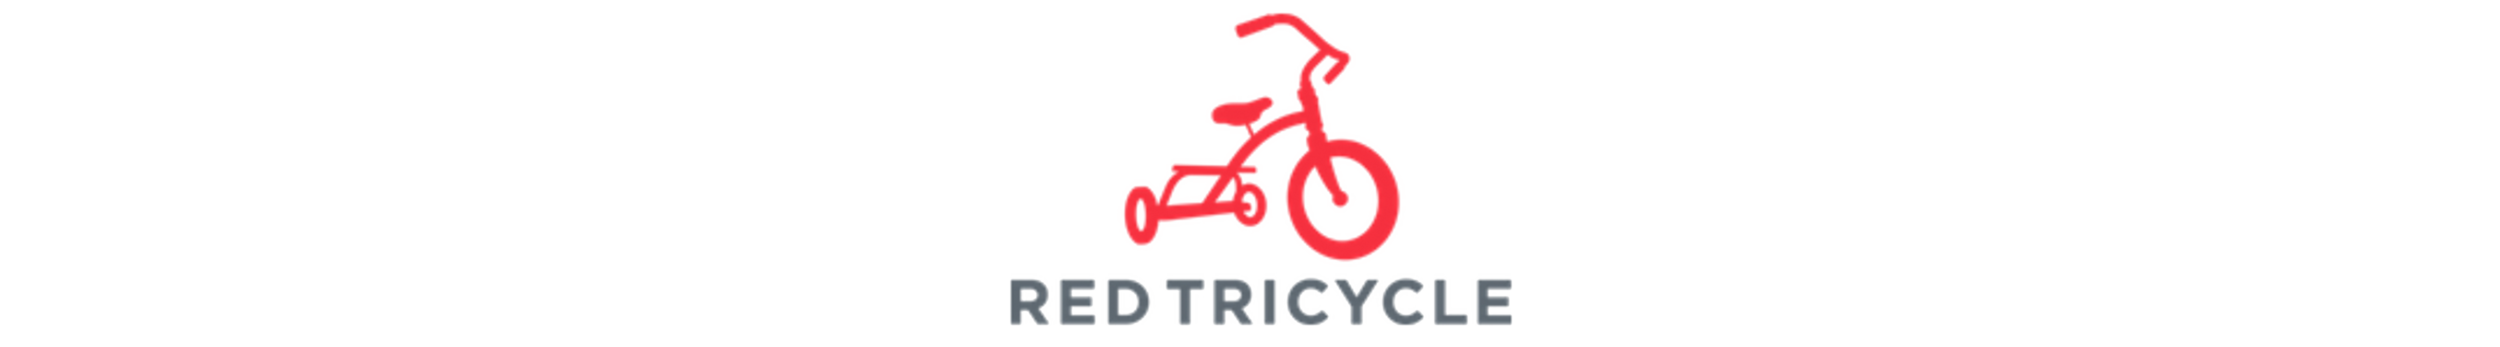 redtri.png